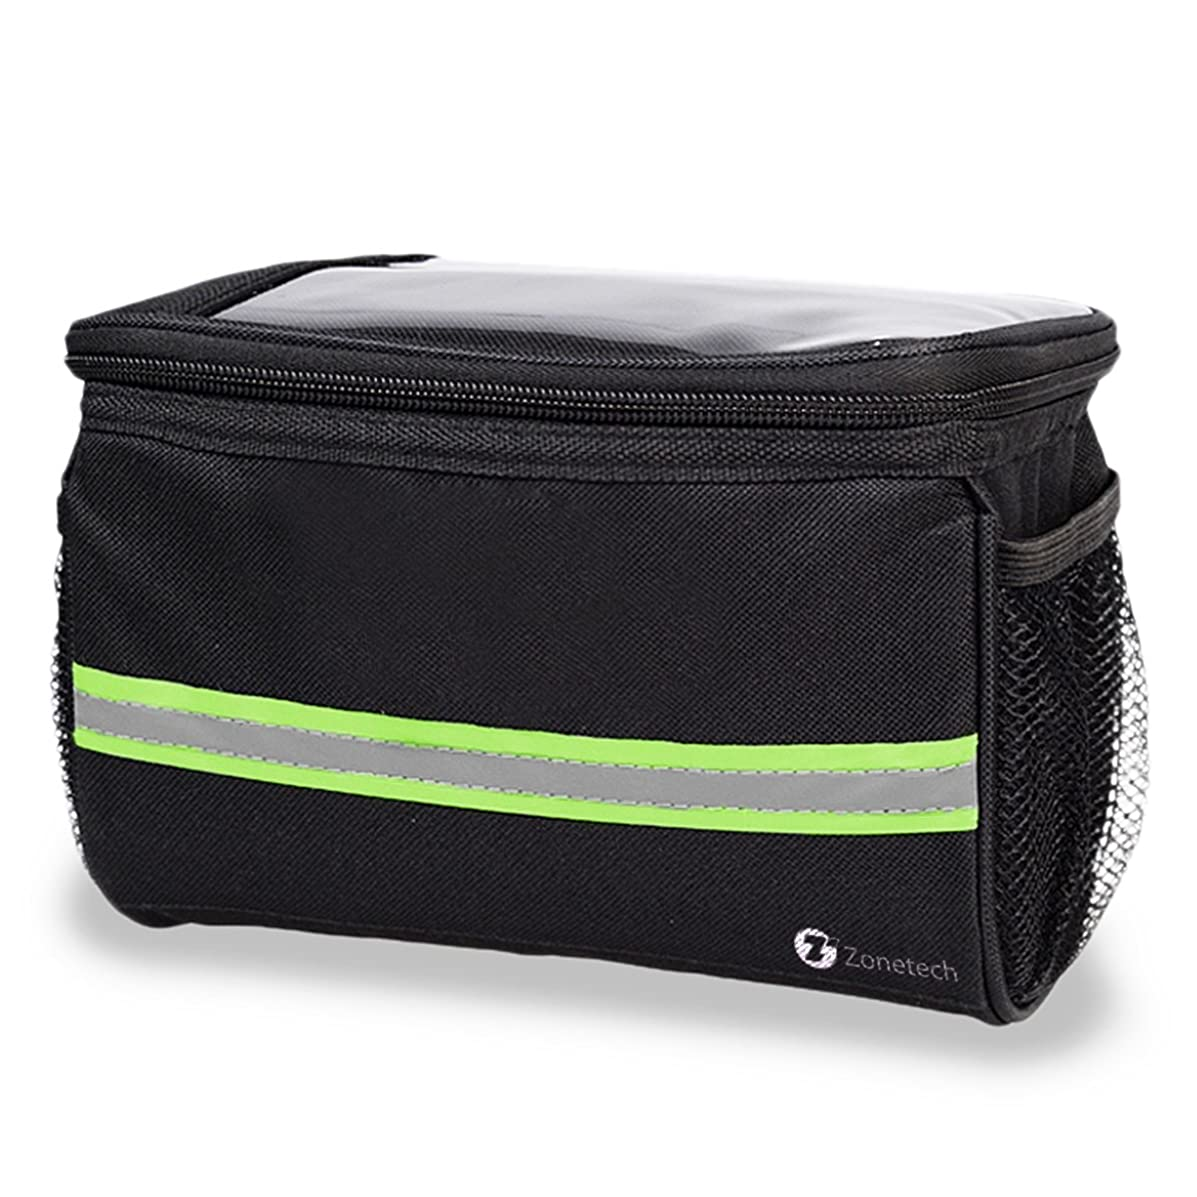 Bicycle Basket Handlebar Bag Black - Zone Tech Premium Quality Handlebar Bag with Reflective Stripe for Outdoor Activity